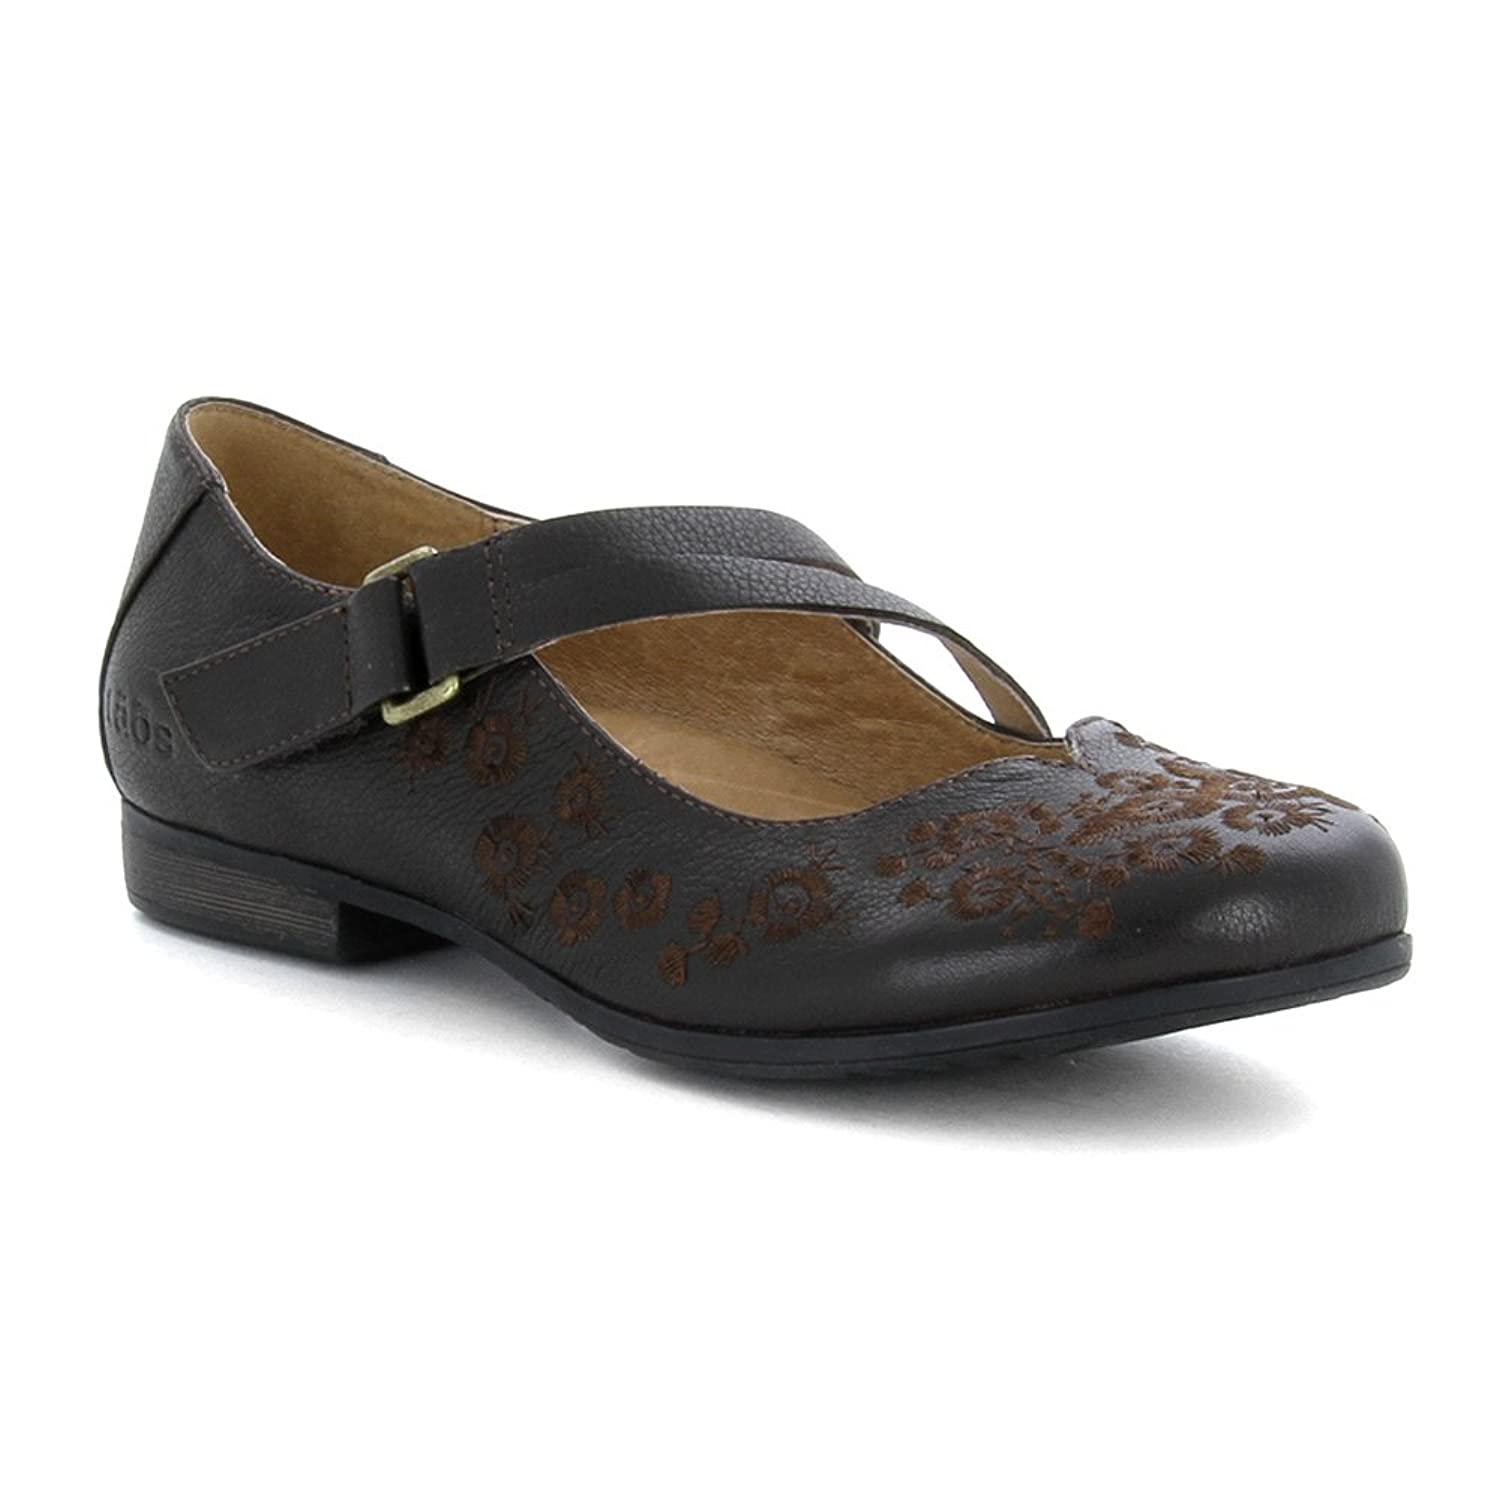 Womens Taos Women's Wish Mary Jane Flat Factory Outlet Size 38